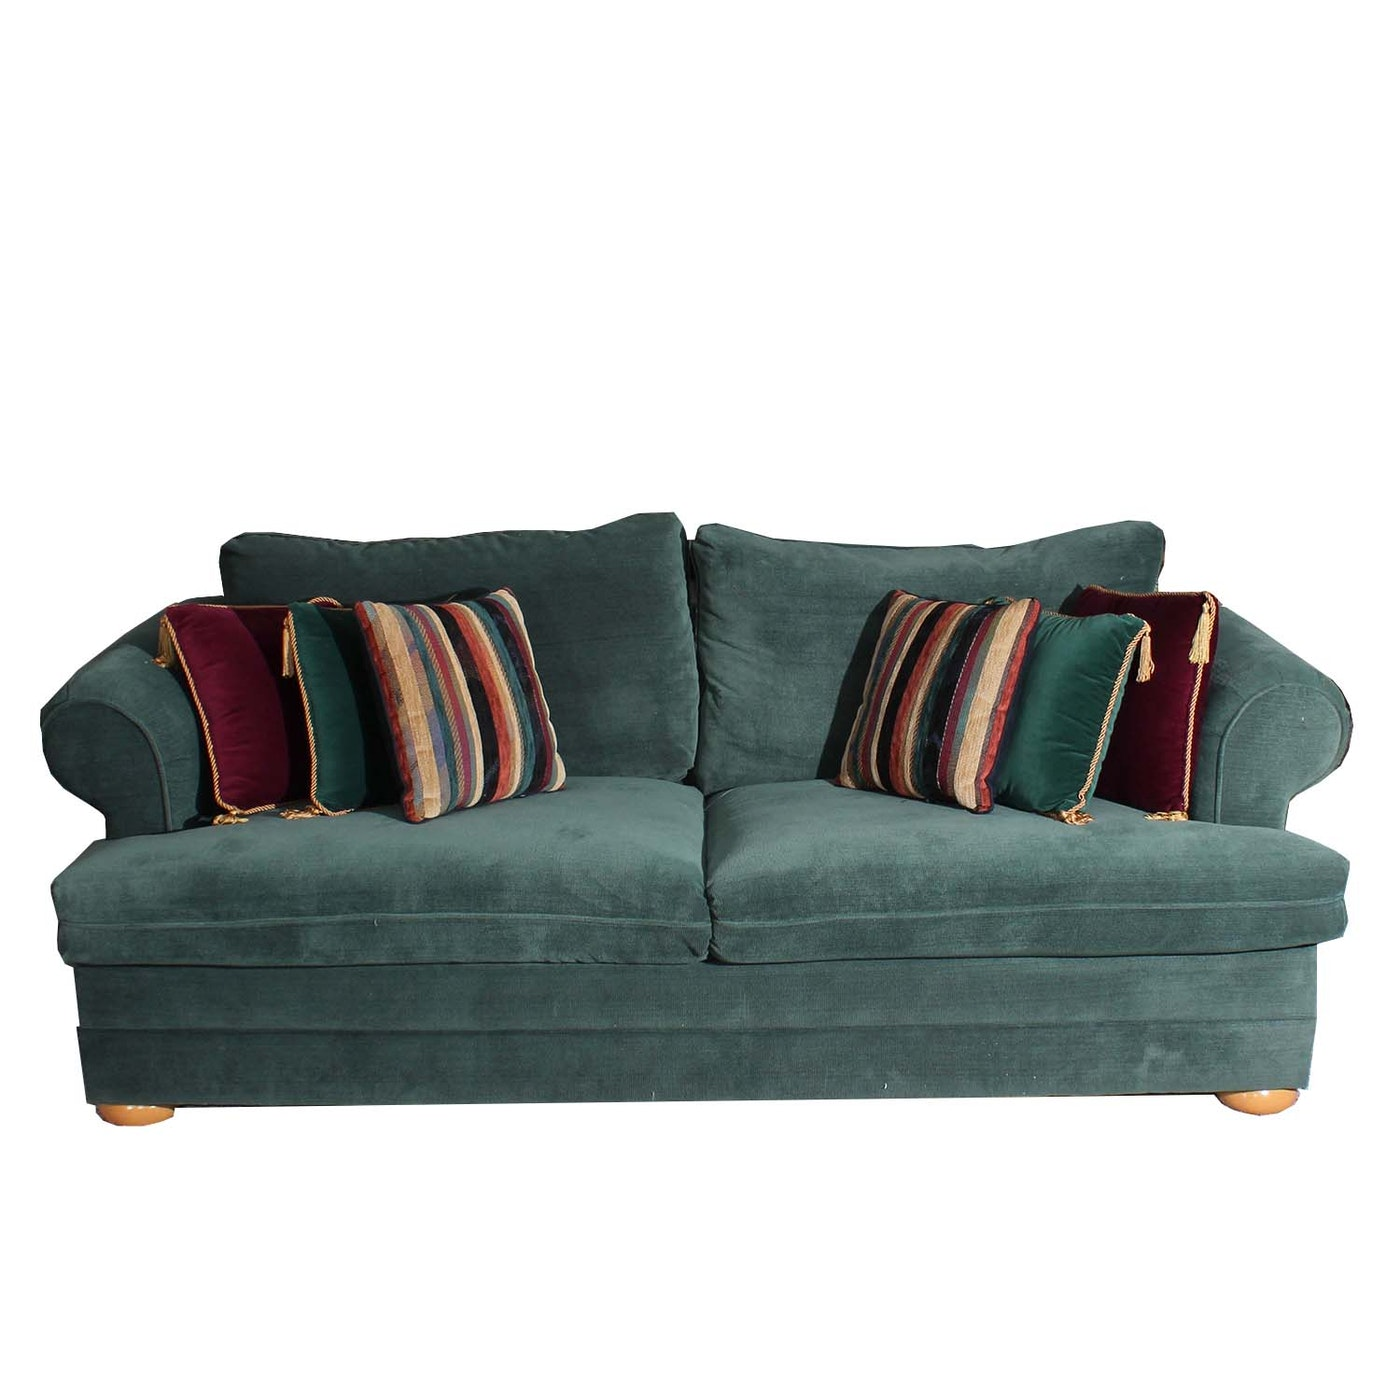 Green Couch With Throw Pillows : Green Upholstered Sleeper Sofa With Throw Pillows : EBTH